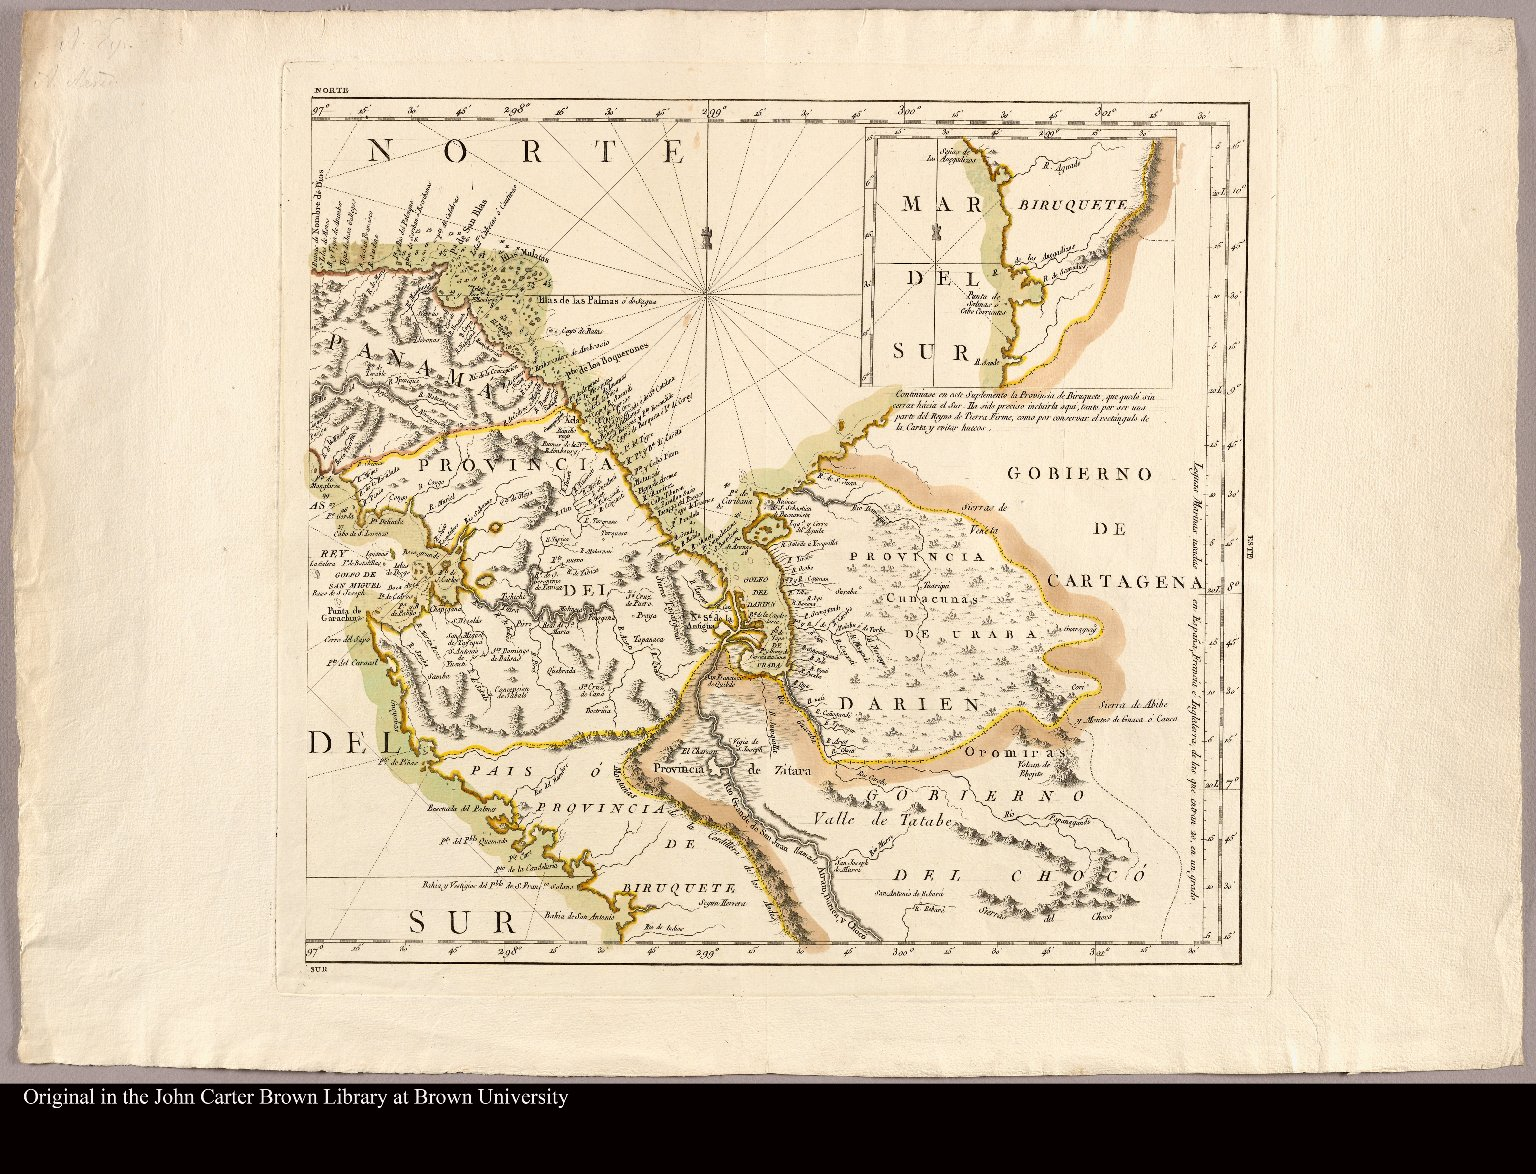 [Sheet 2. Map of Panama and the Darien colony]